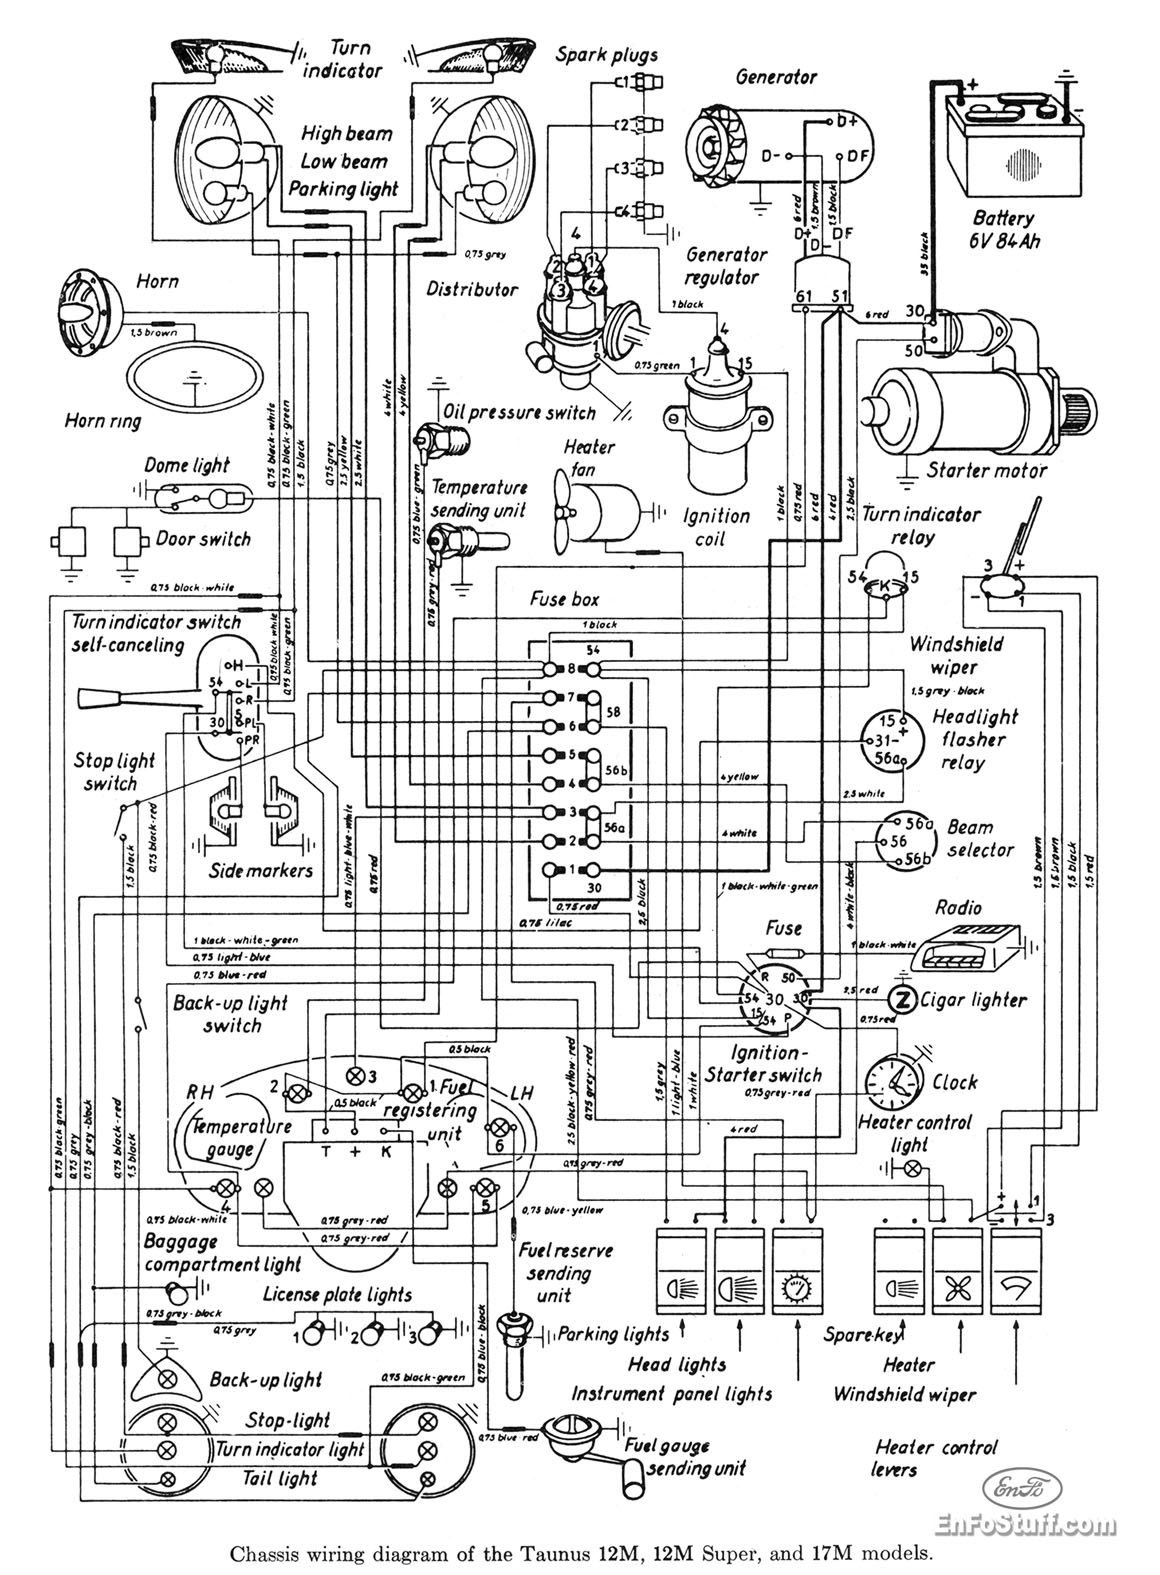 Mitsubishi L200 Warrior Wiring Diagram Online Schematics Car Fuse Box U2022 Datsun 620